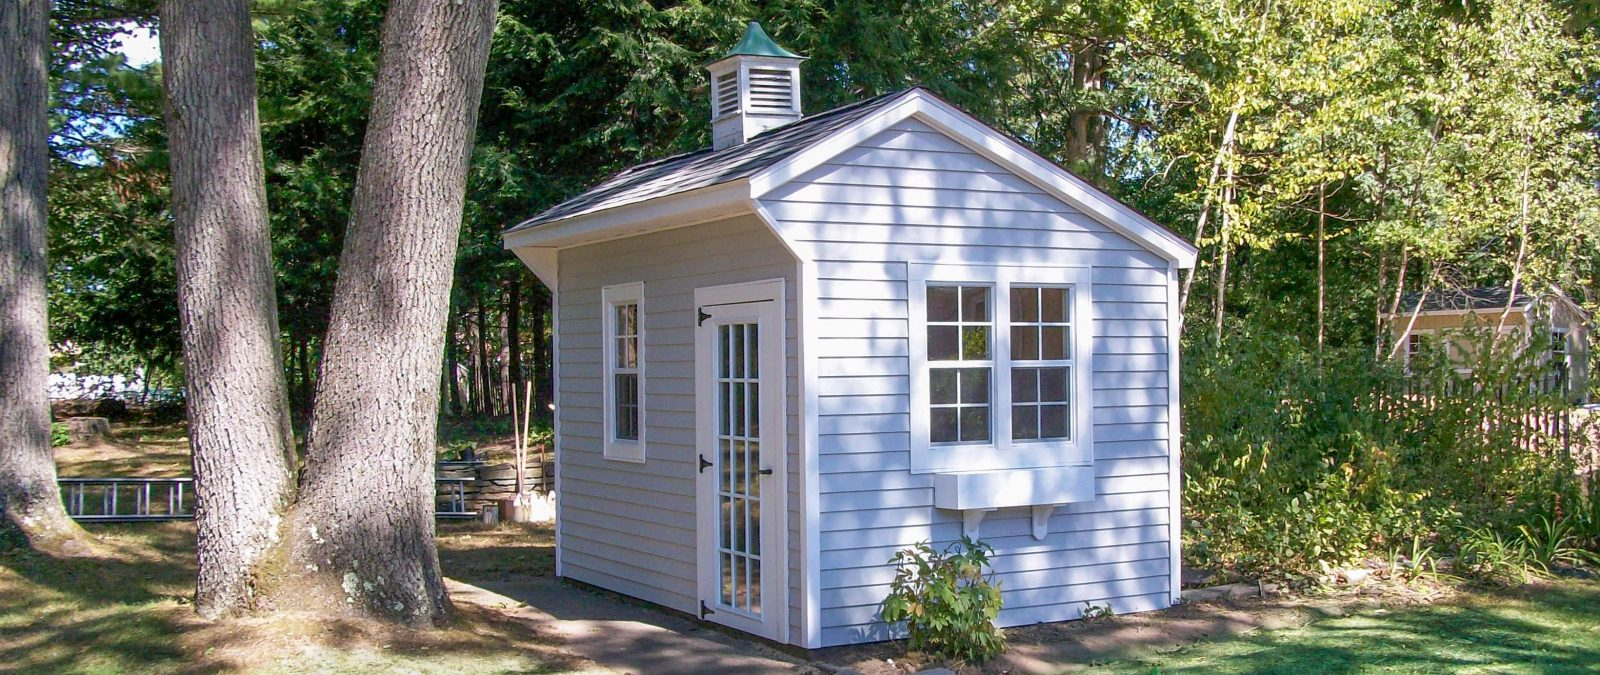 saltbox sheds for sale